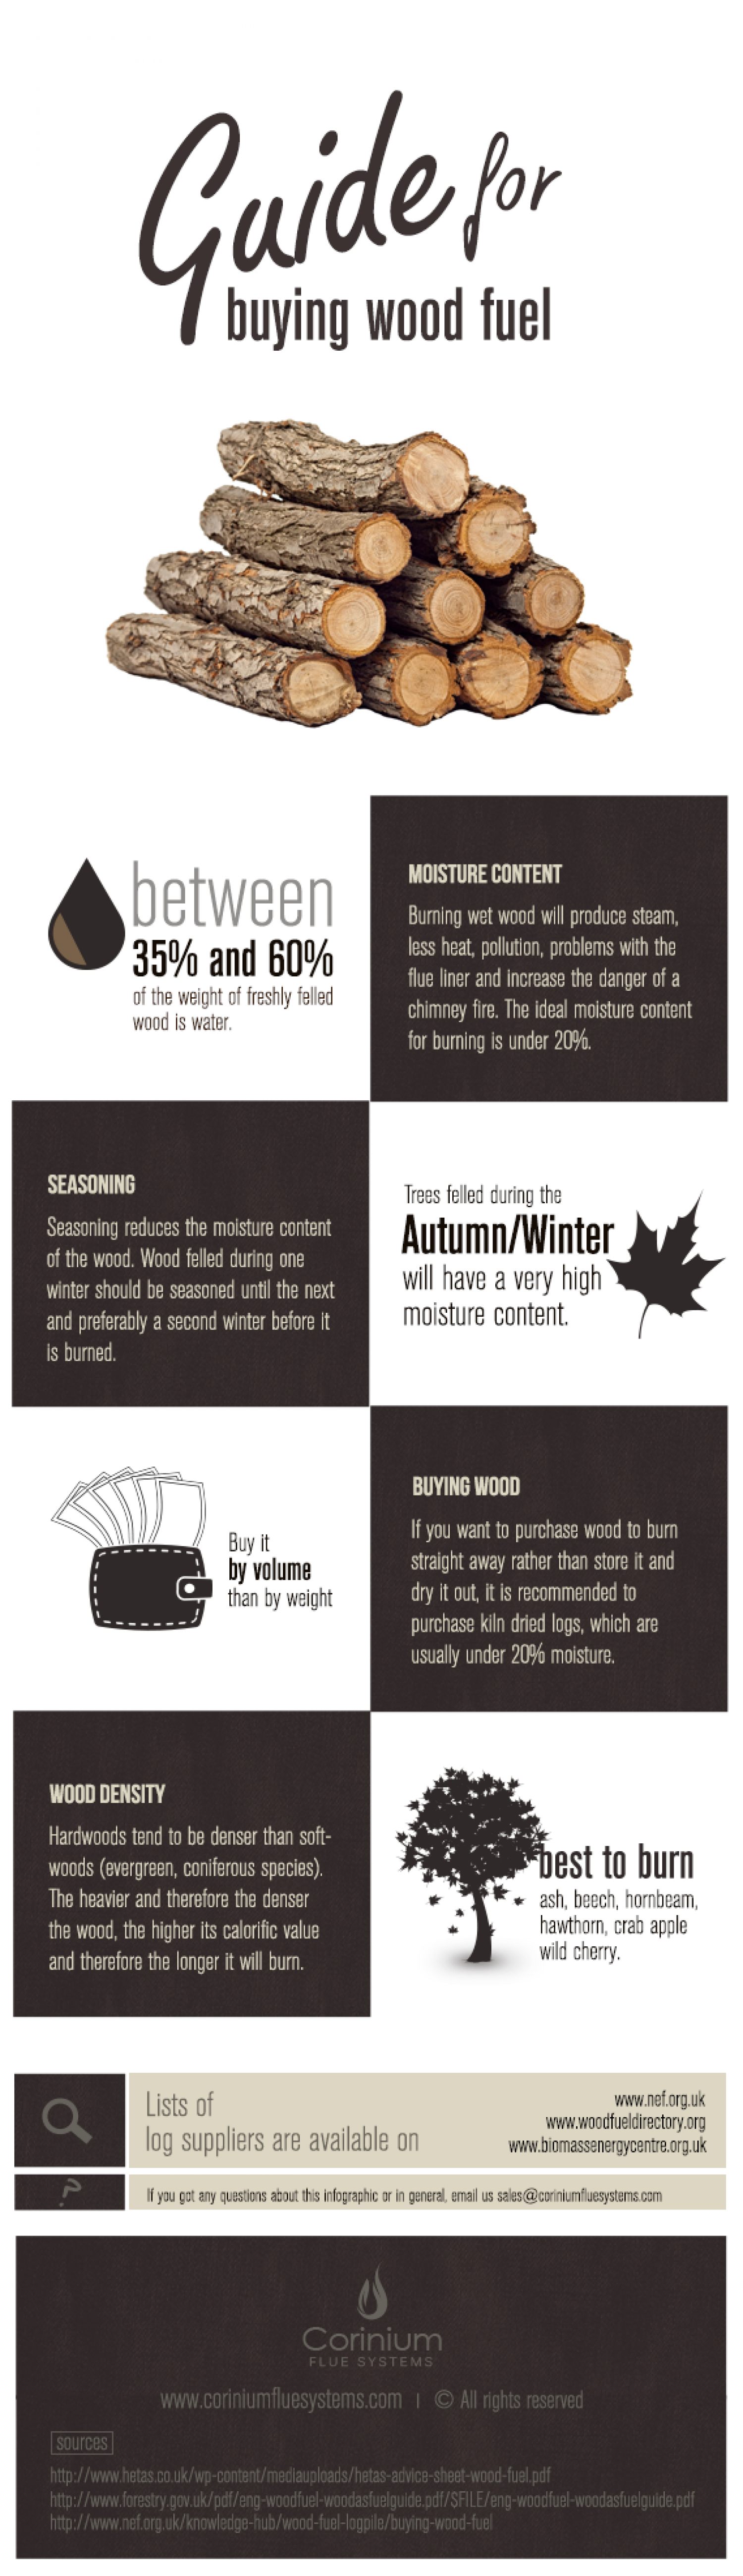 Guide for Buying Wood Fuel Infographic